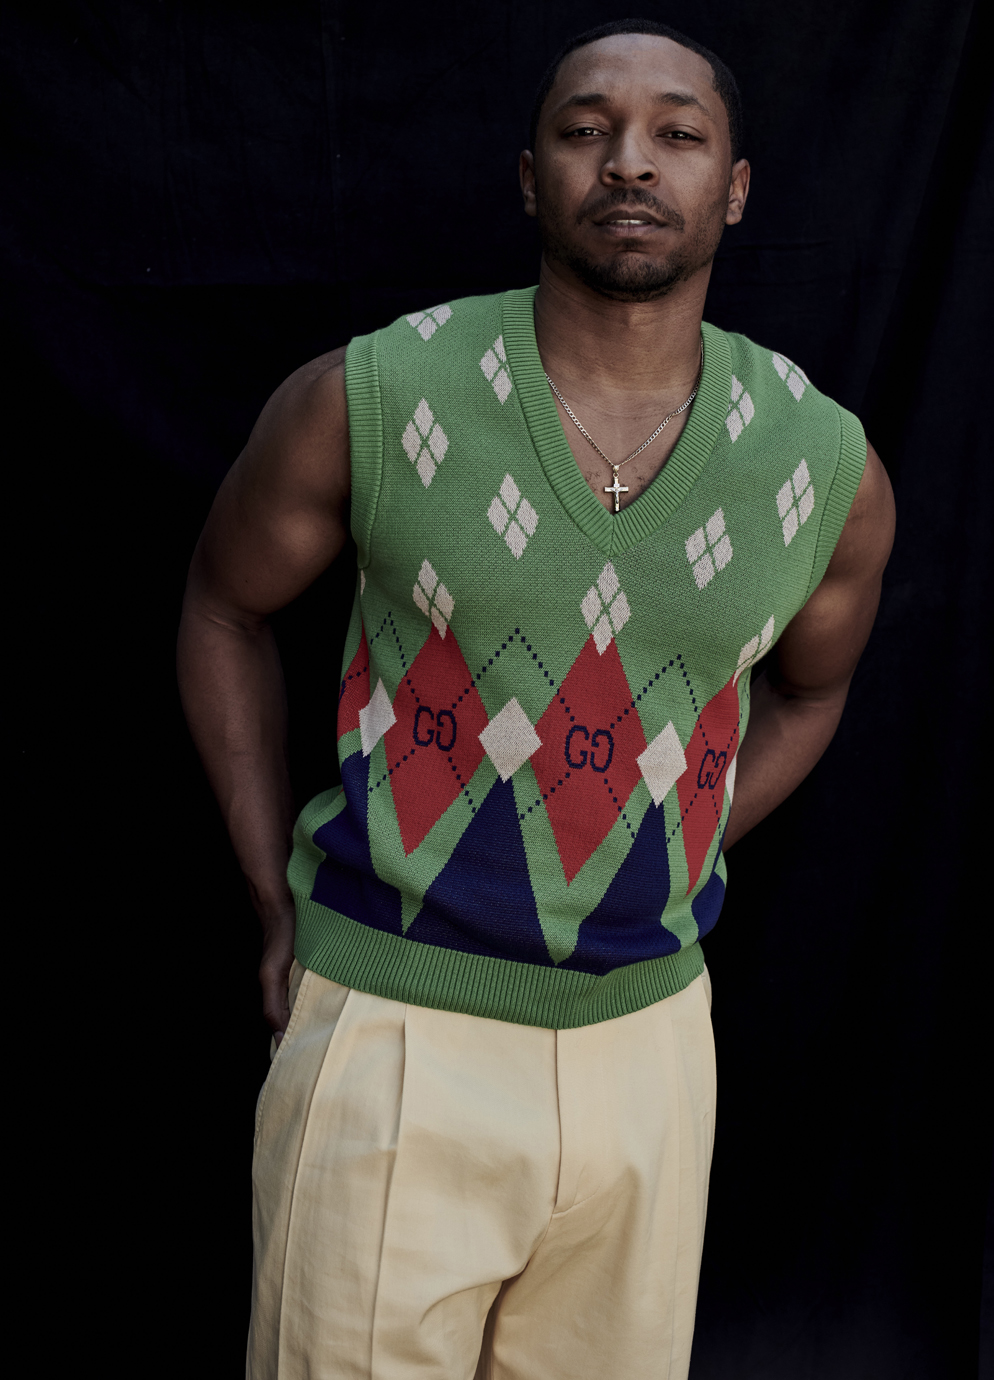 portrait of man in Gucci sweater vest against opaque background